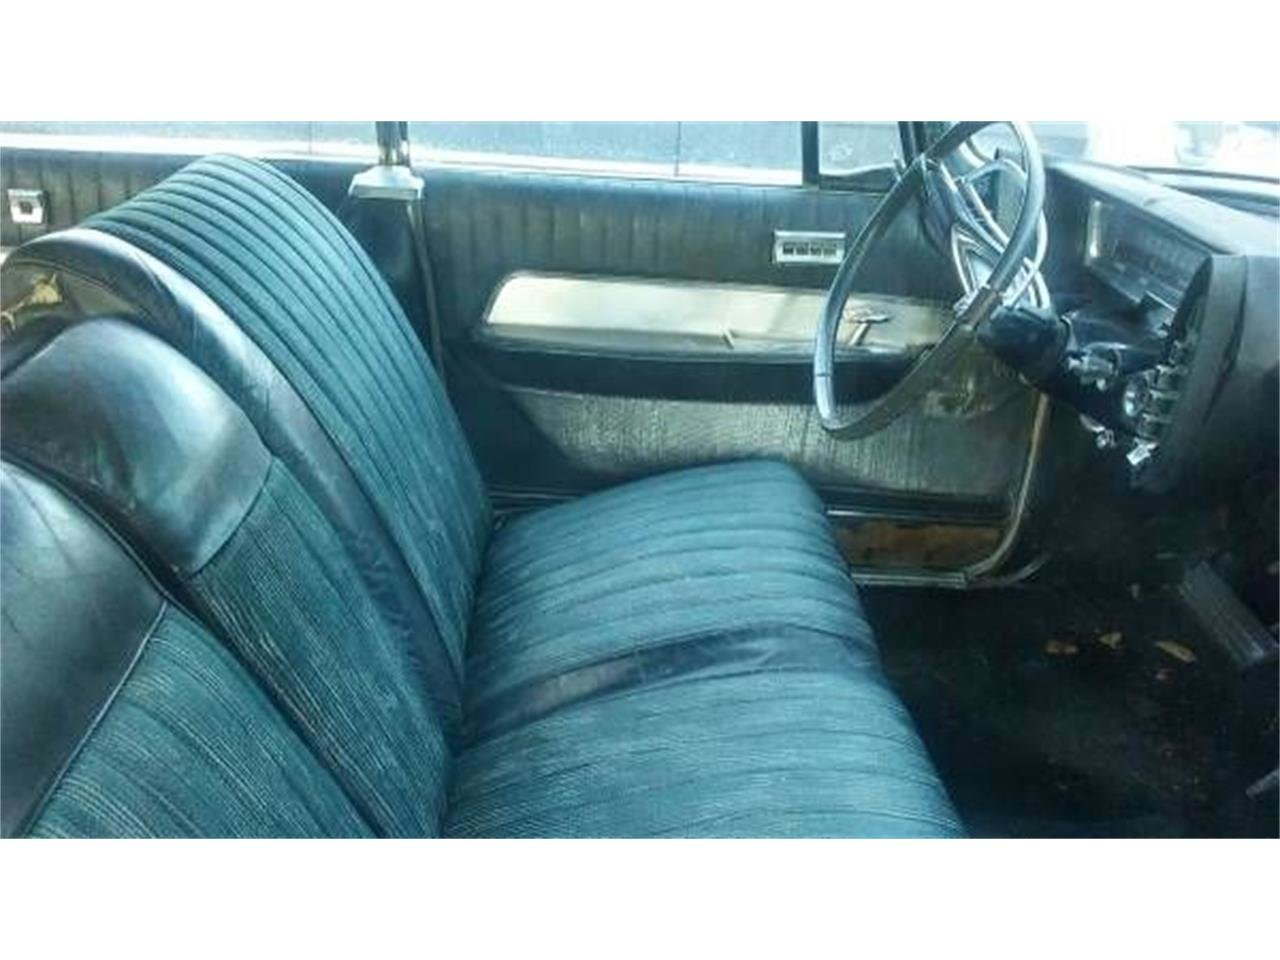 1952 1962 Chrysler Imperial Crown For Sale (picture 5 of 6)